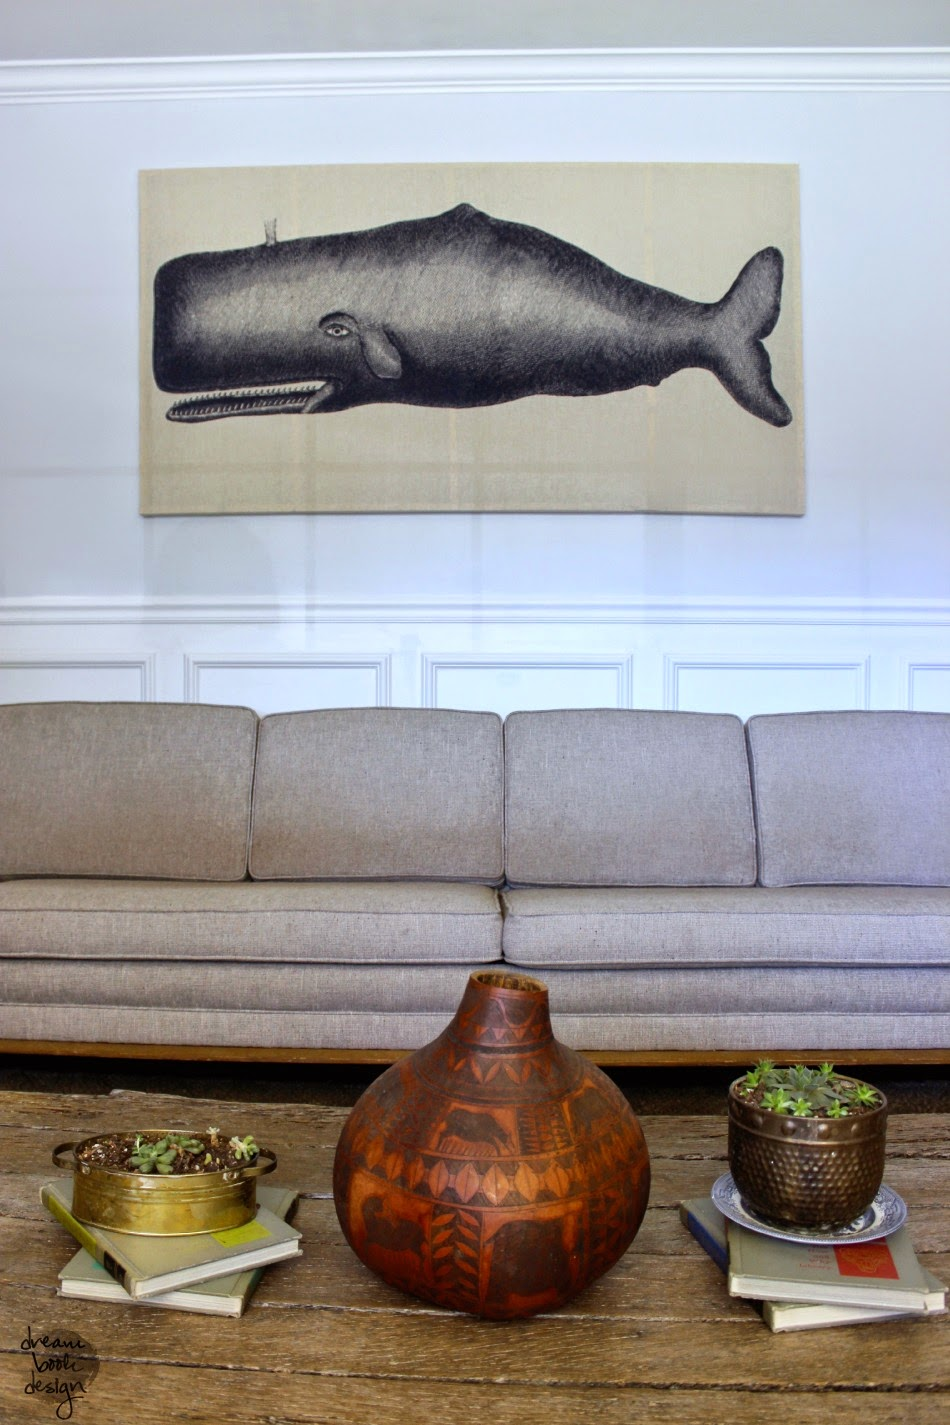 DIY WHALE MOBY DICK WALL ART CORTINA DE DUCHA